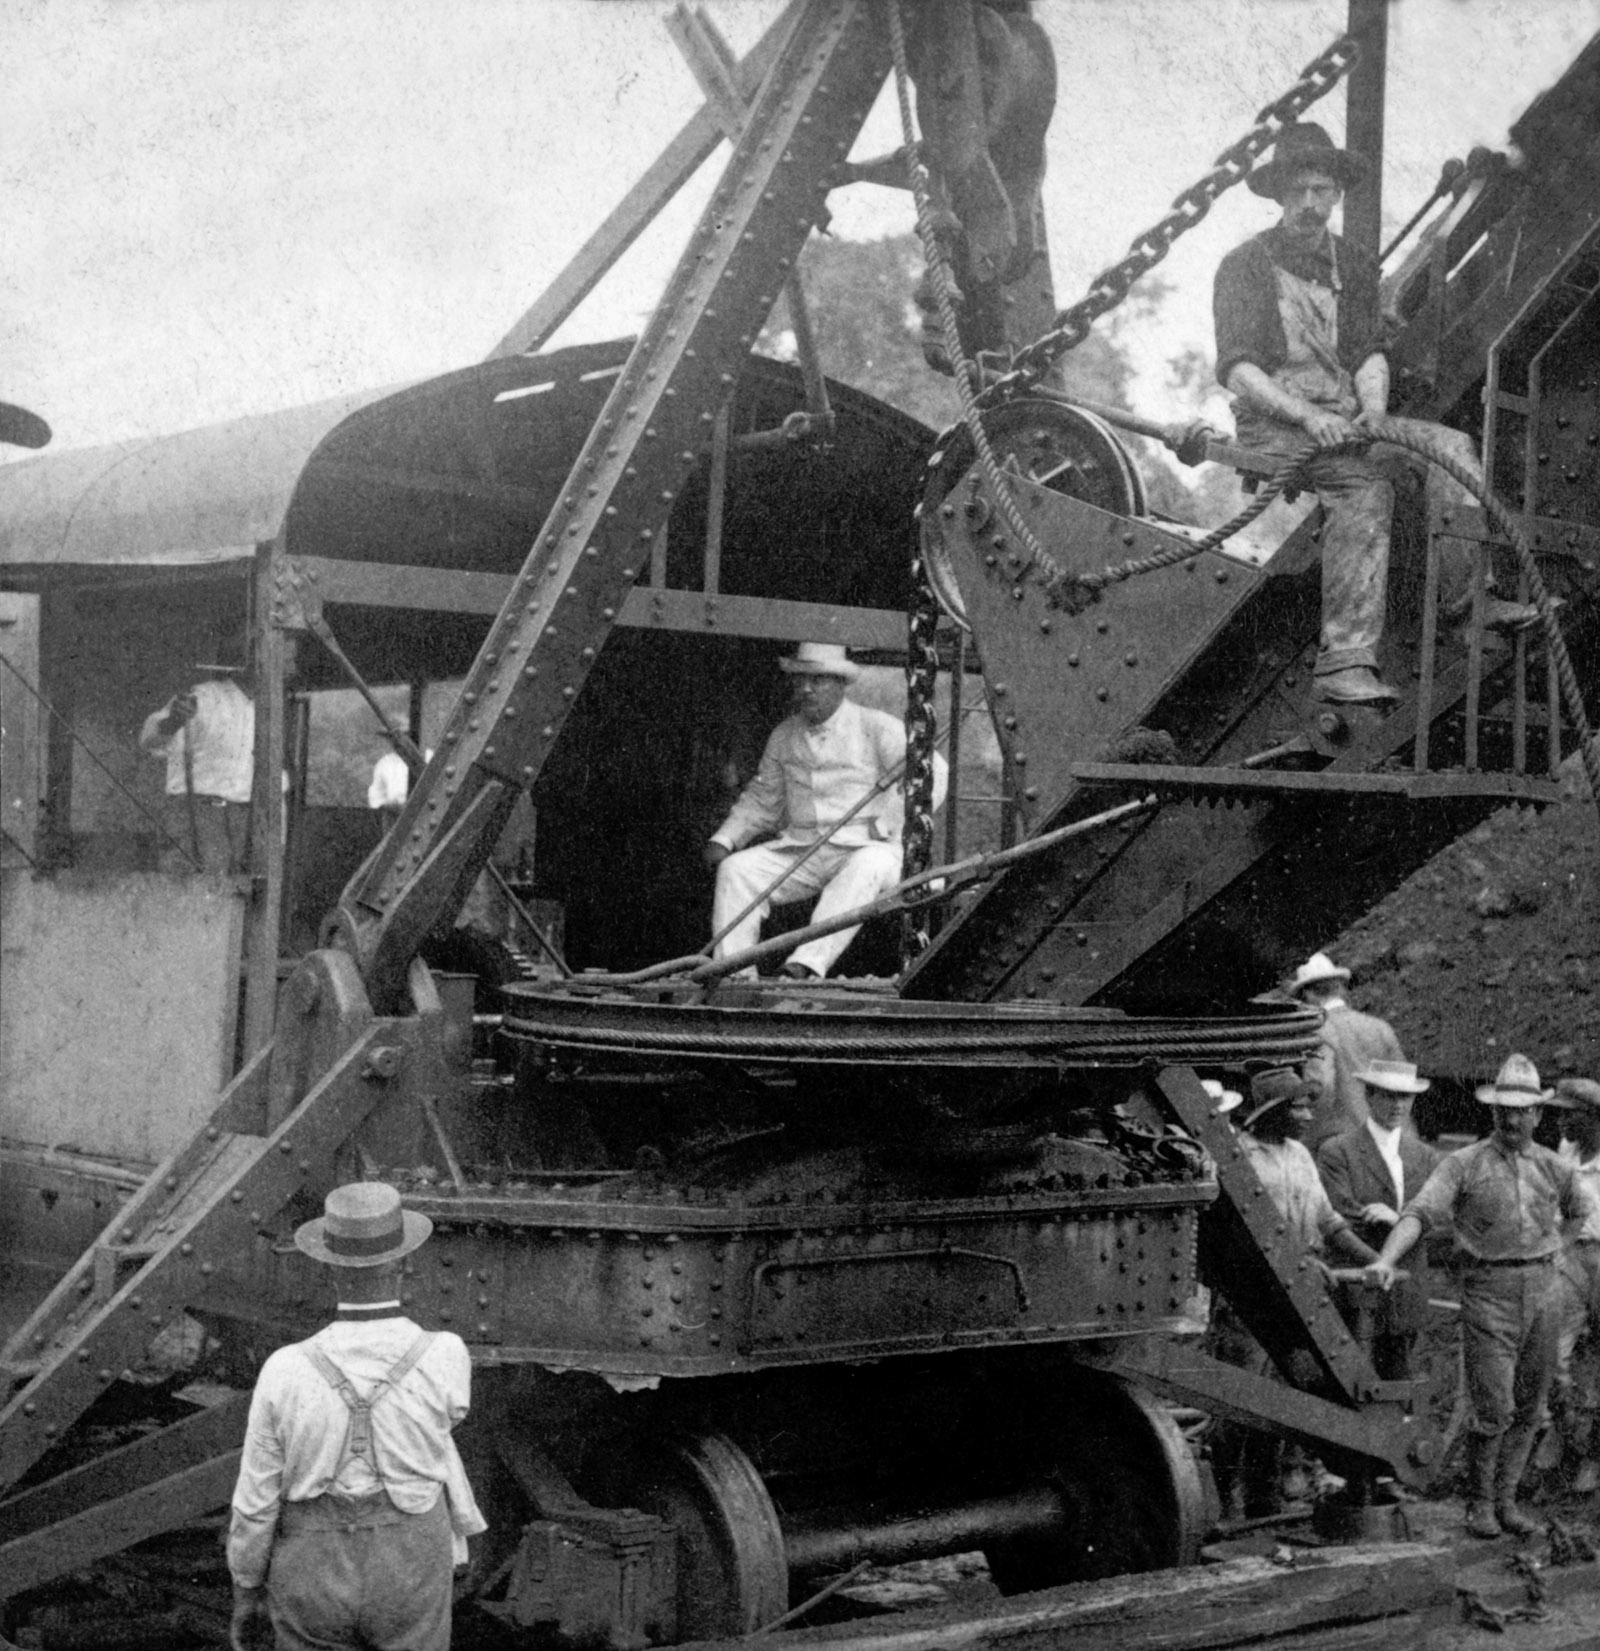 Theodore Roosevelt, center, during construction of the Panama Canal, 1906